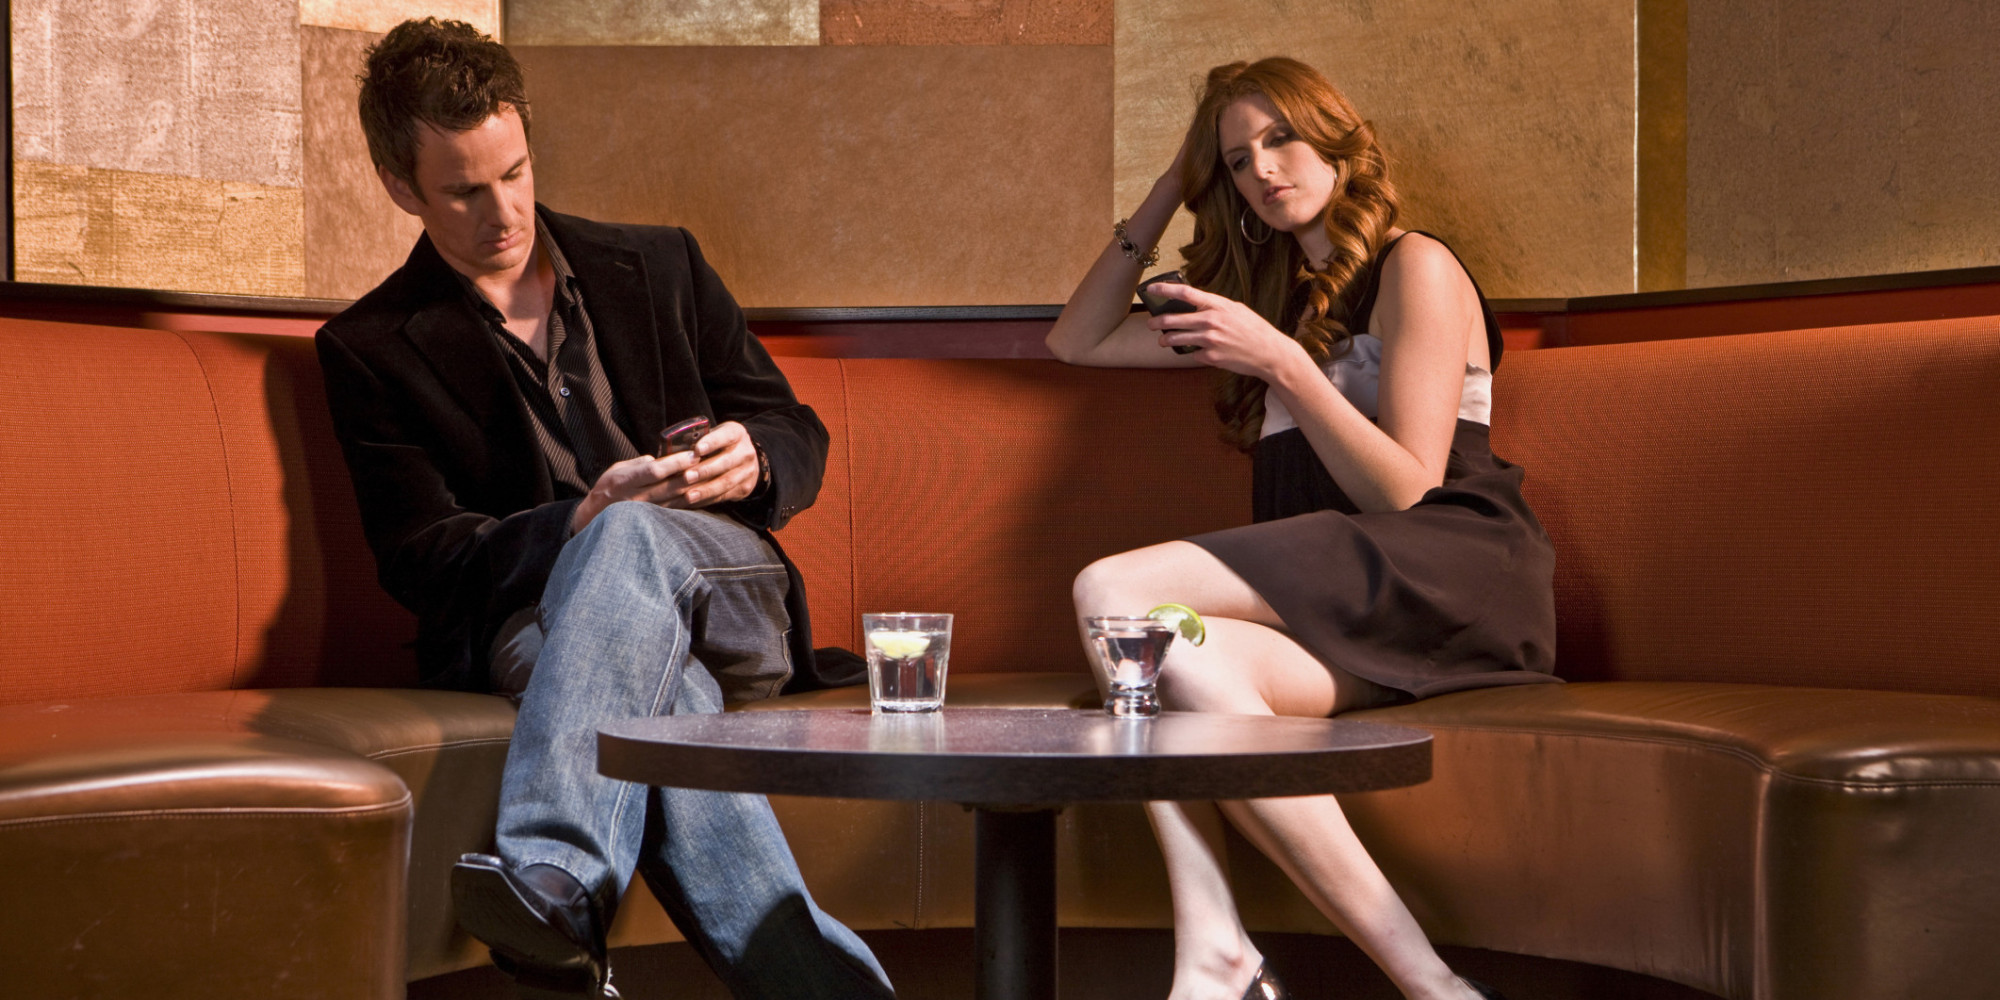 Are people addicted to dating apps and social media